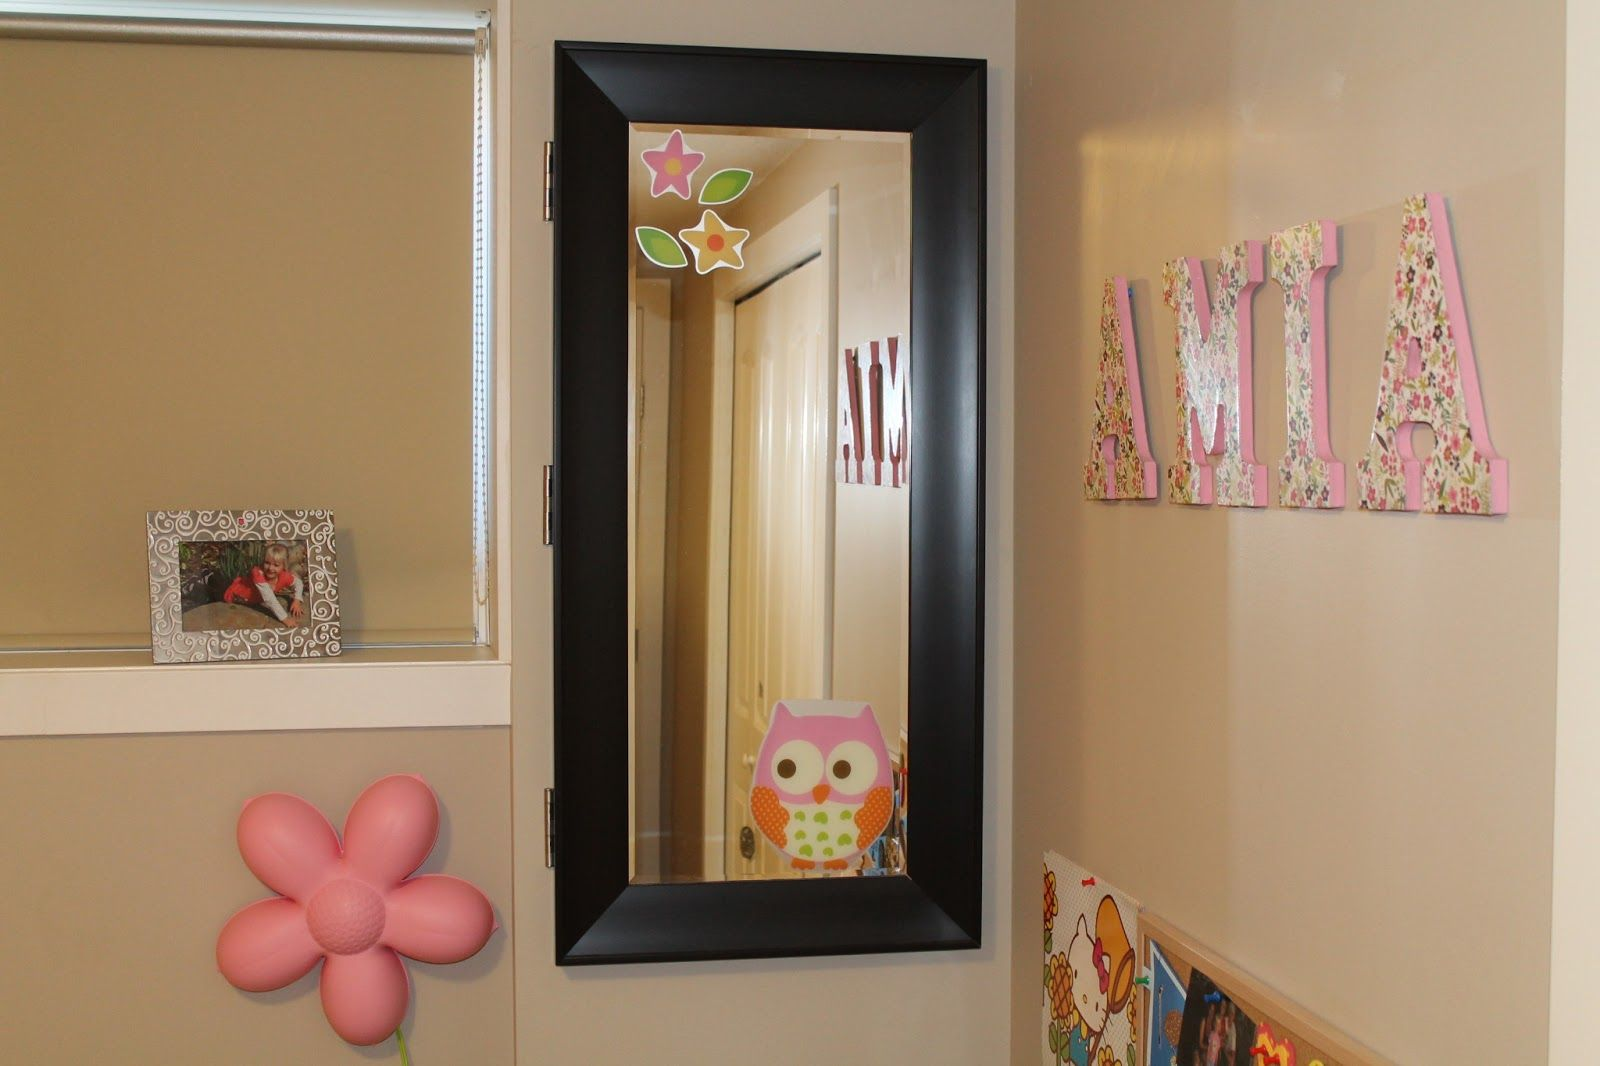 hight resolution of electrical panel cover a framed mirror on hinges attractive and functional